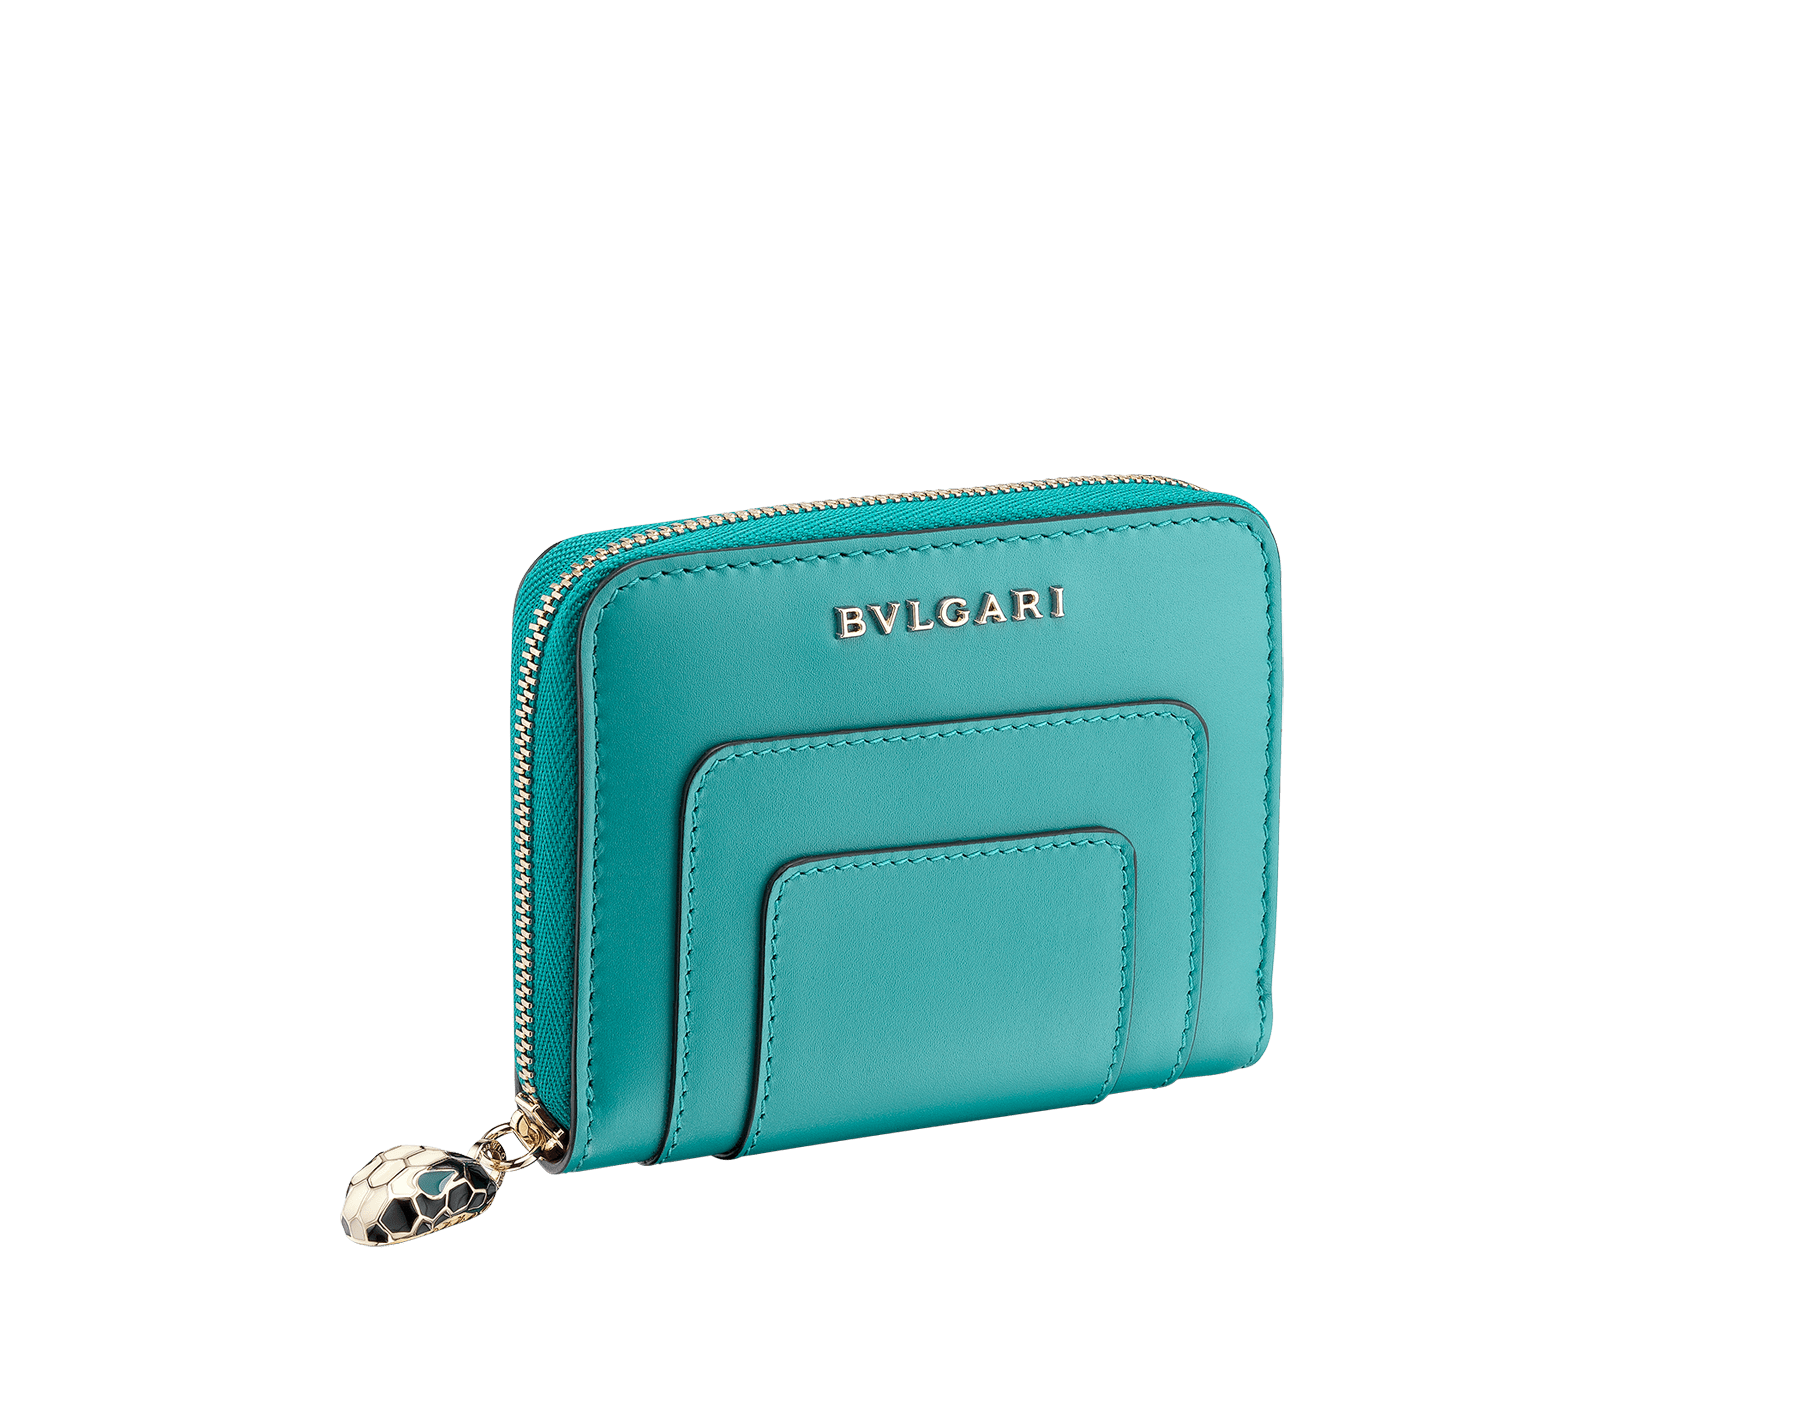 Serpenti Forever mini zipped wallet in arctic jade and grape amethyst calf leather. Iconic snakehead zip puller in black and white enamel with green enamel eyes. 288810 image 1